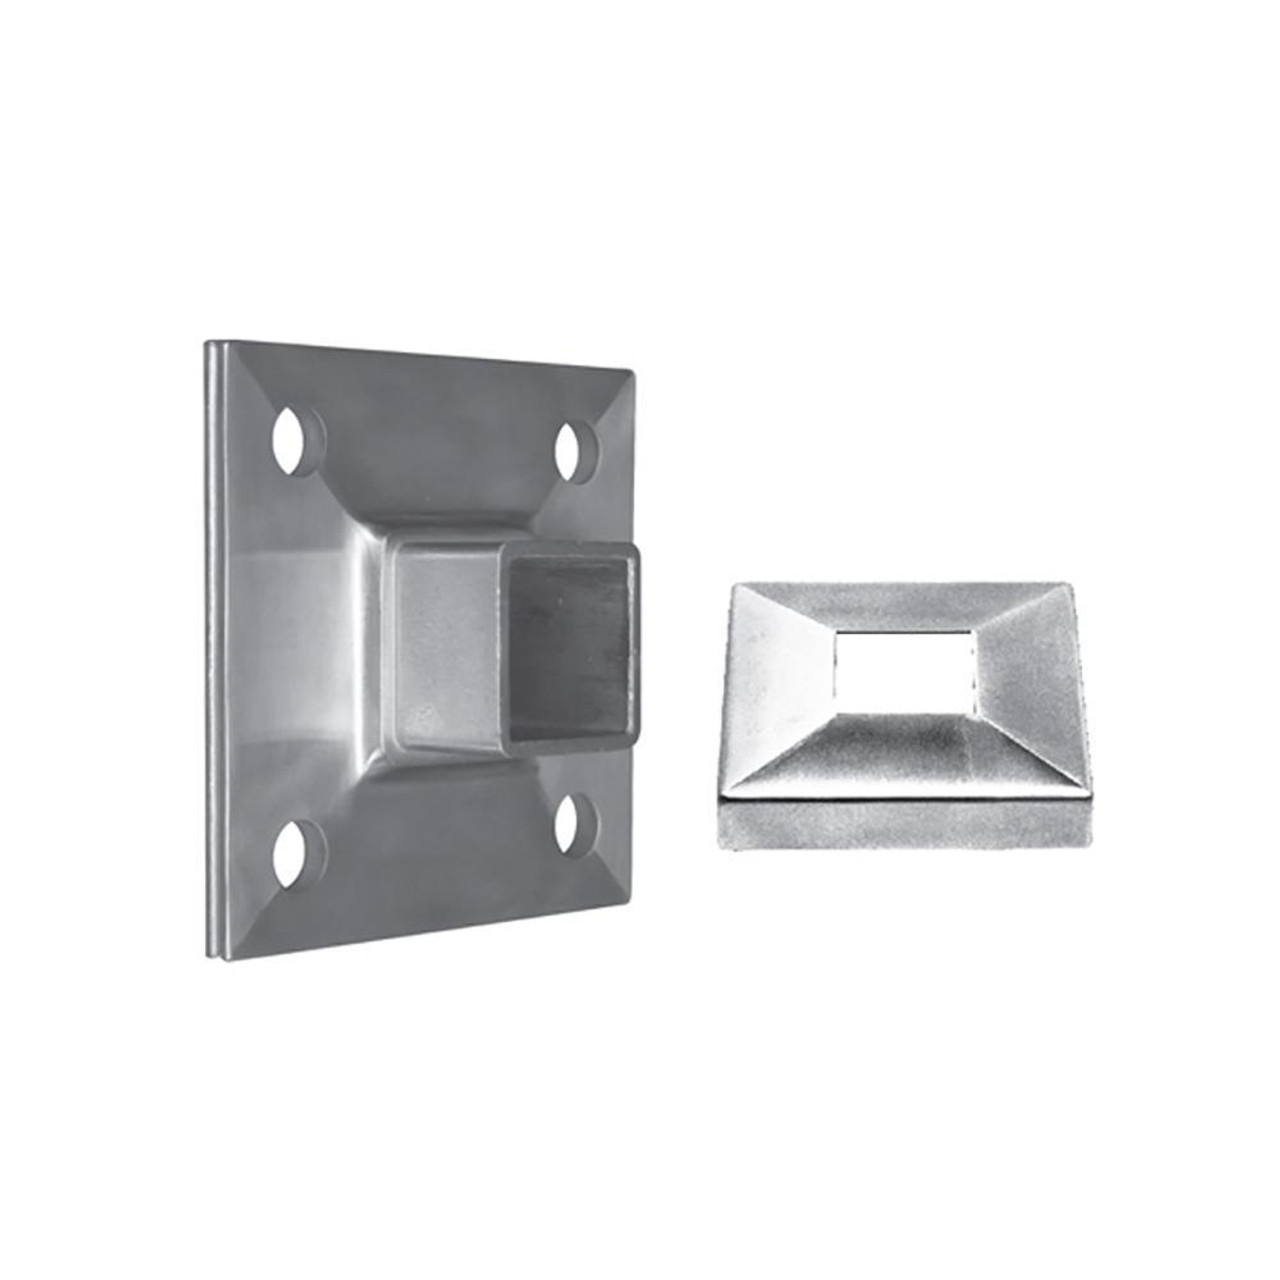 Wall Mount Flange for Square Rail – 40 x 40 x 2 mm (AX20.008.150.A.SP)